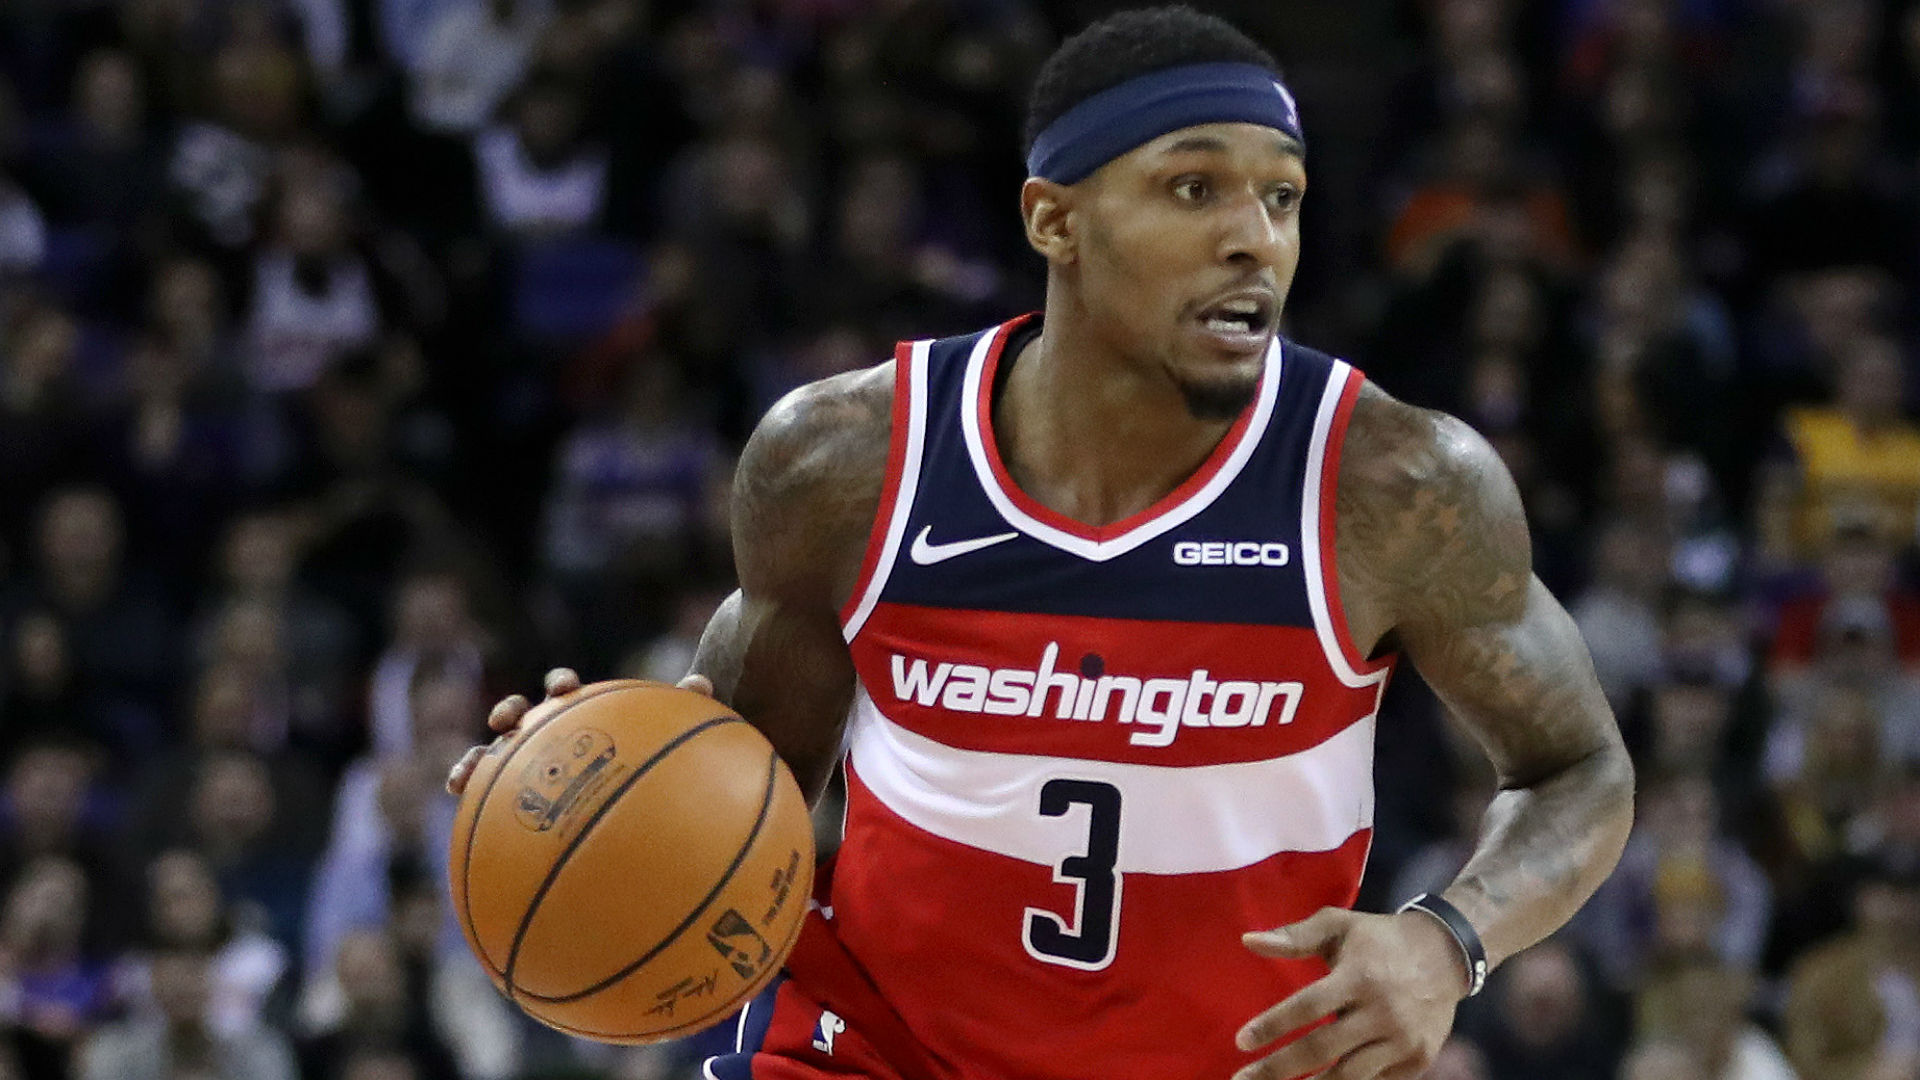 NBA free agency news: Wizards to offer Bradley Beal $111M max extension